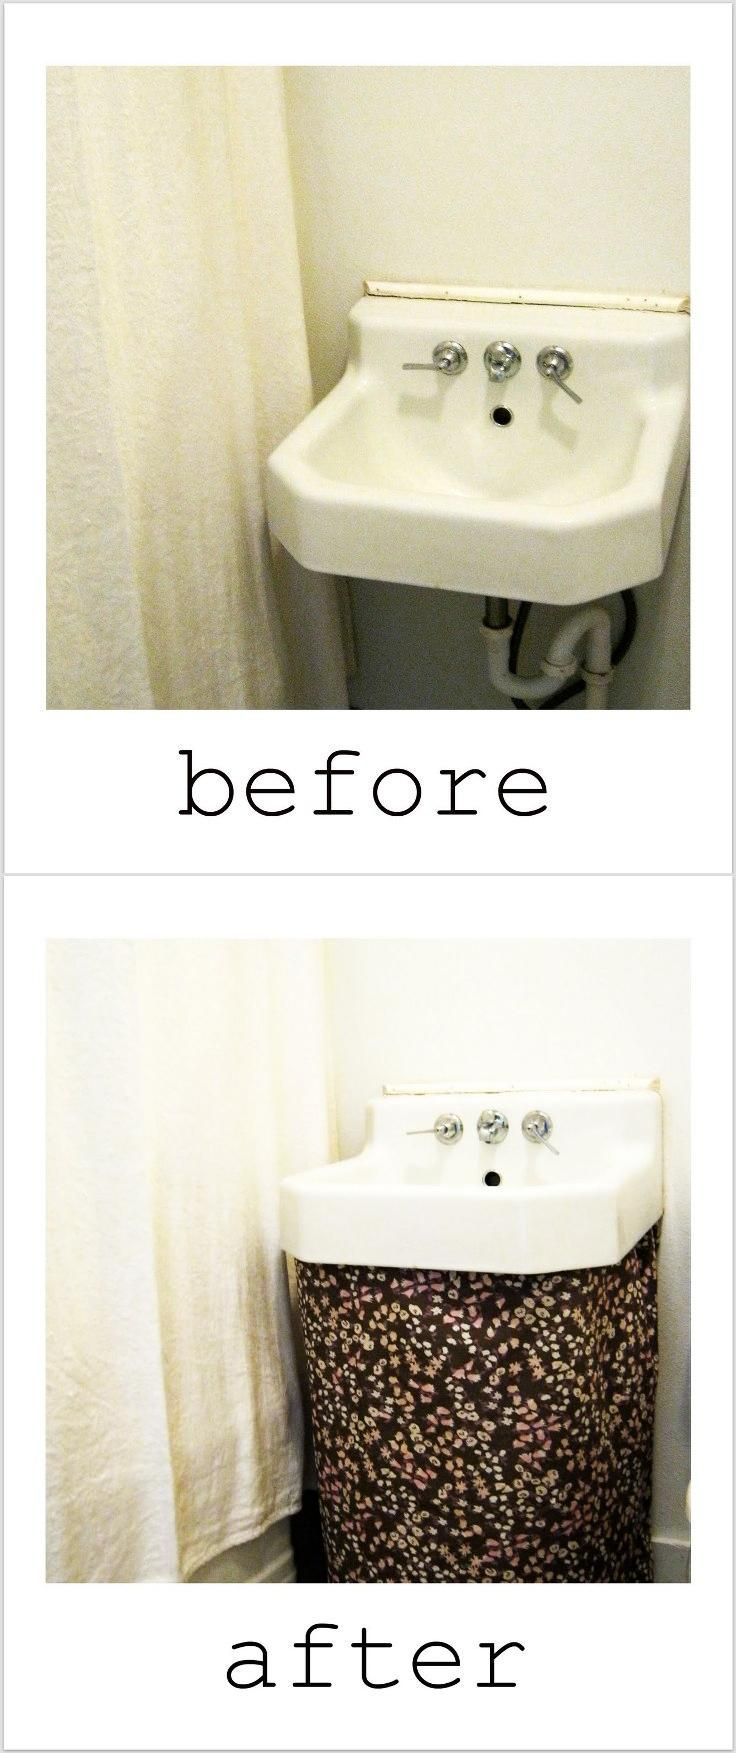 Top 10 DIY Projects for Renters: Sew a sink skirt to hide pipes.